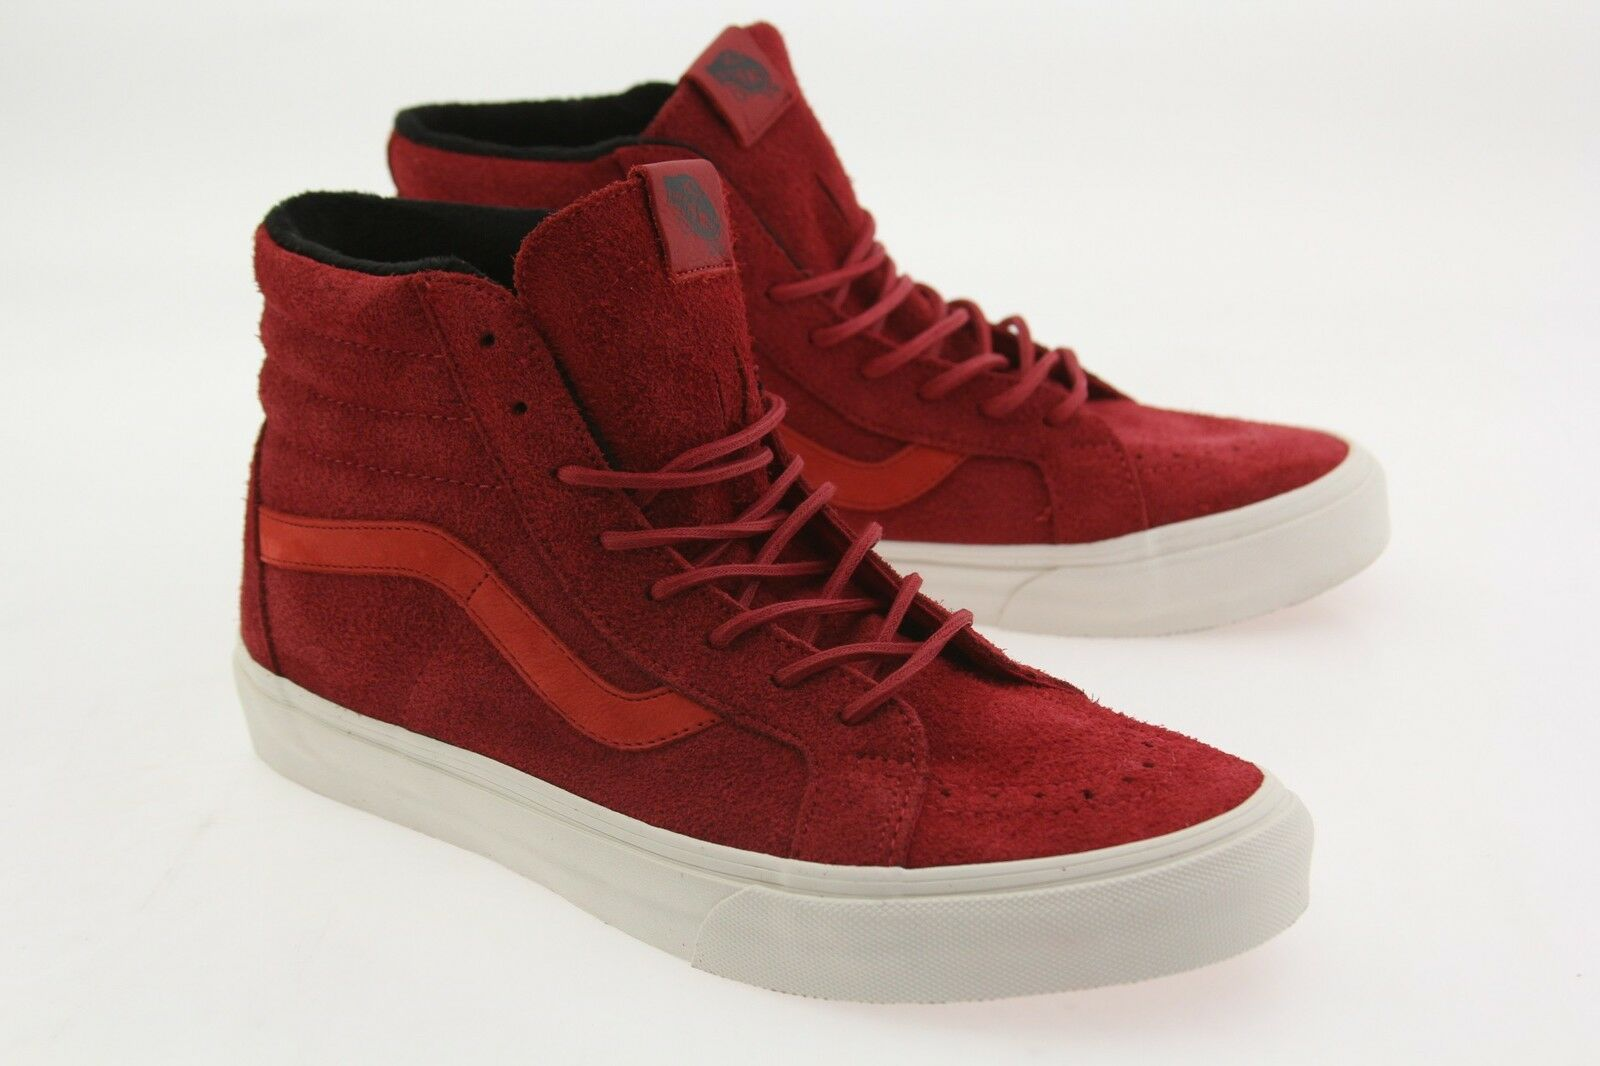 Vans Men Sk8-Hi Reissue - Year Of The Monkey red suede VN04OKJ95